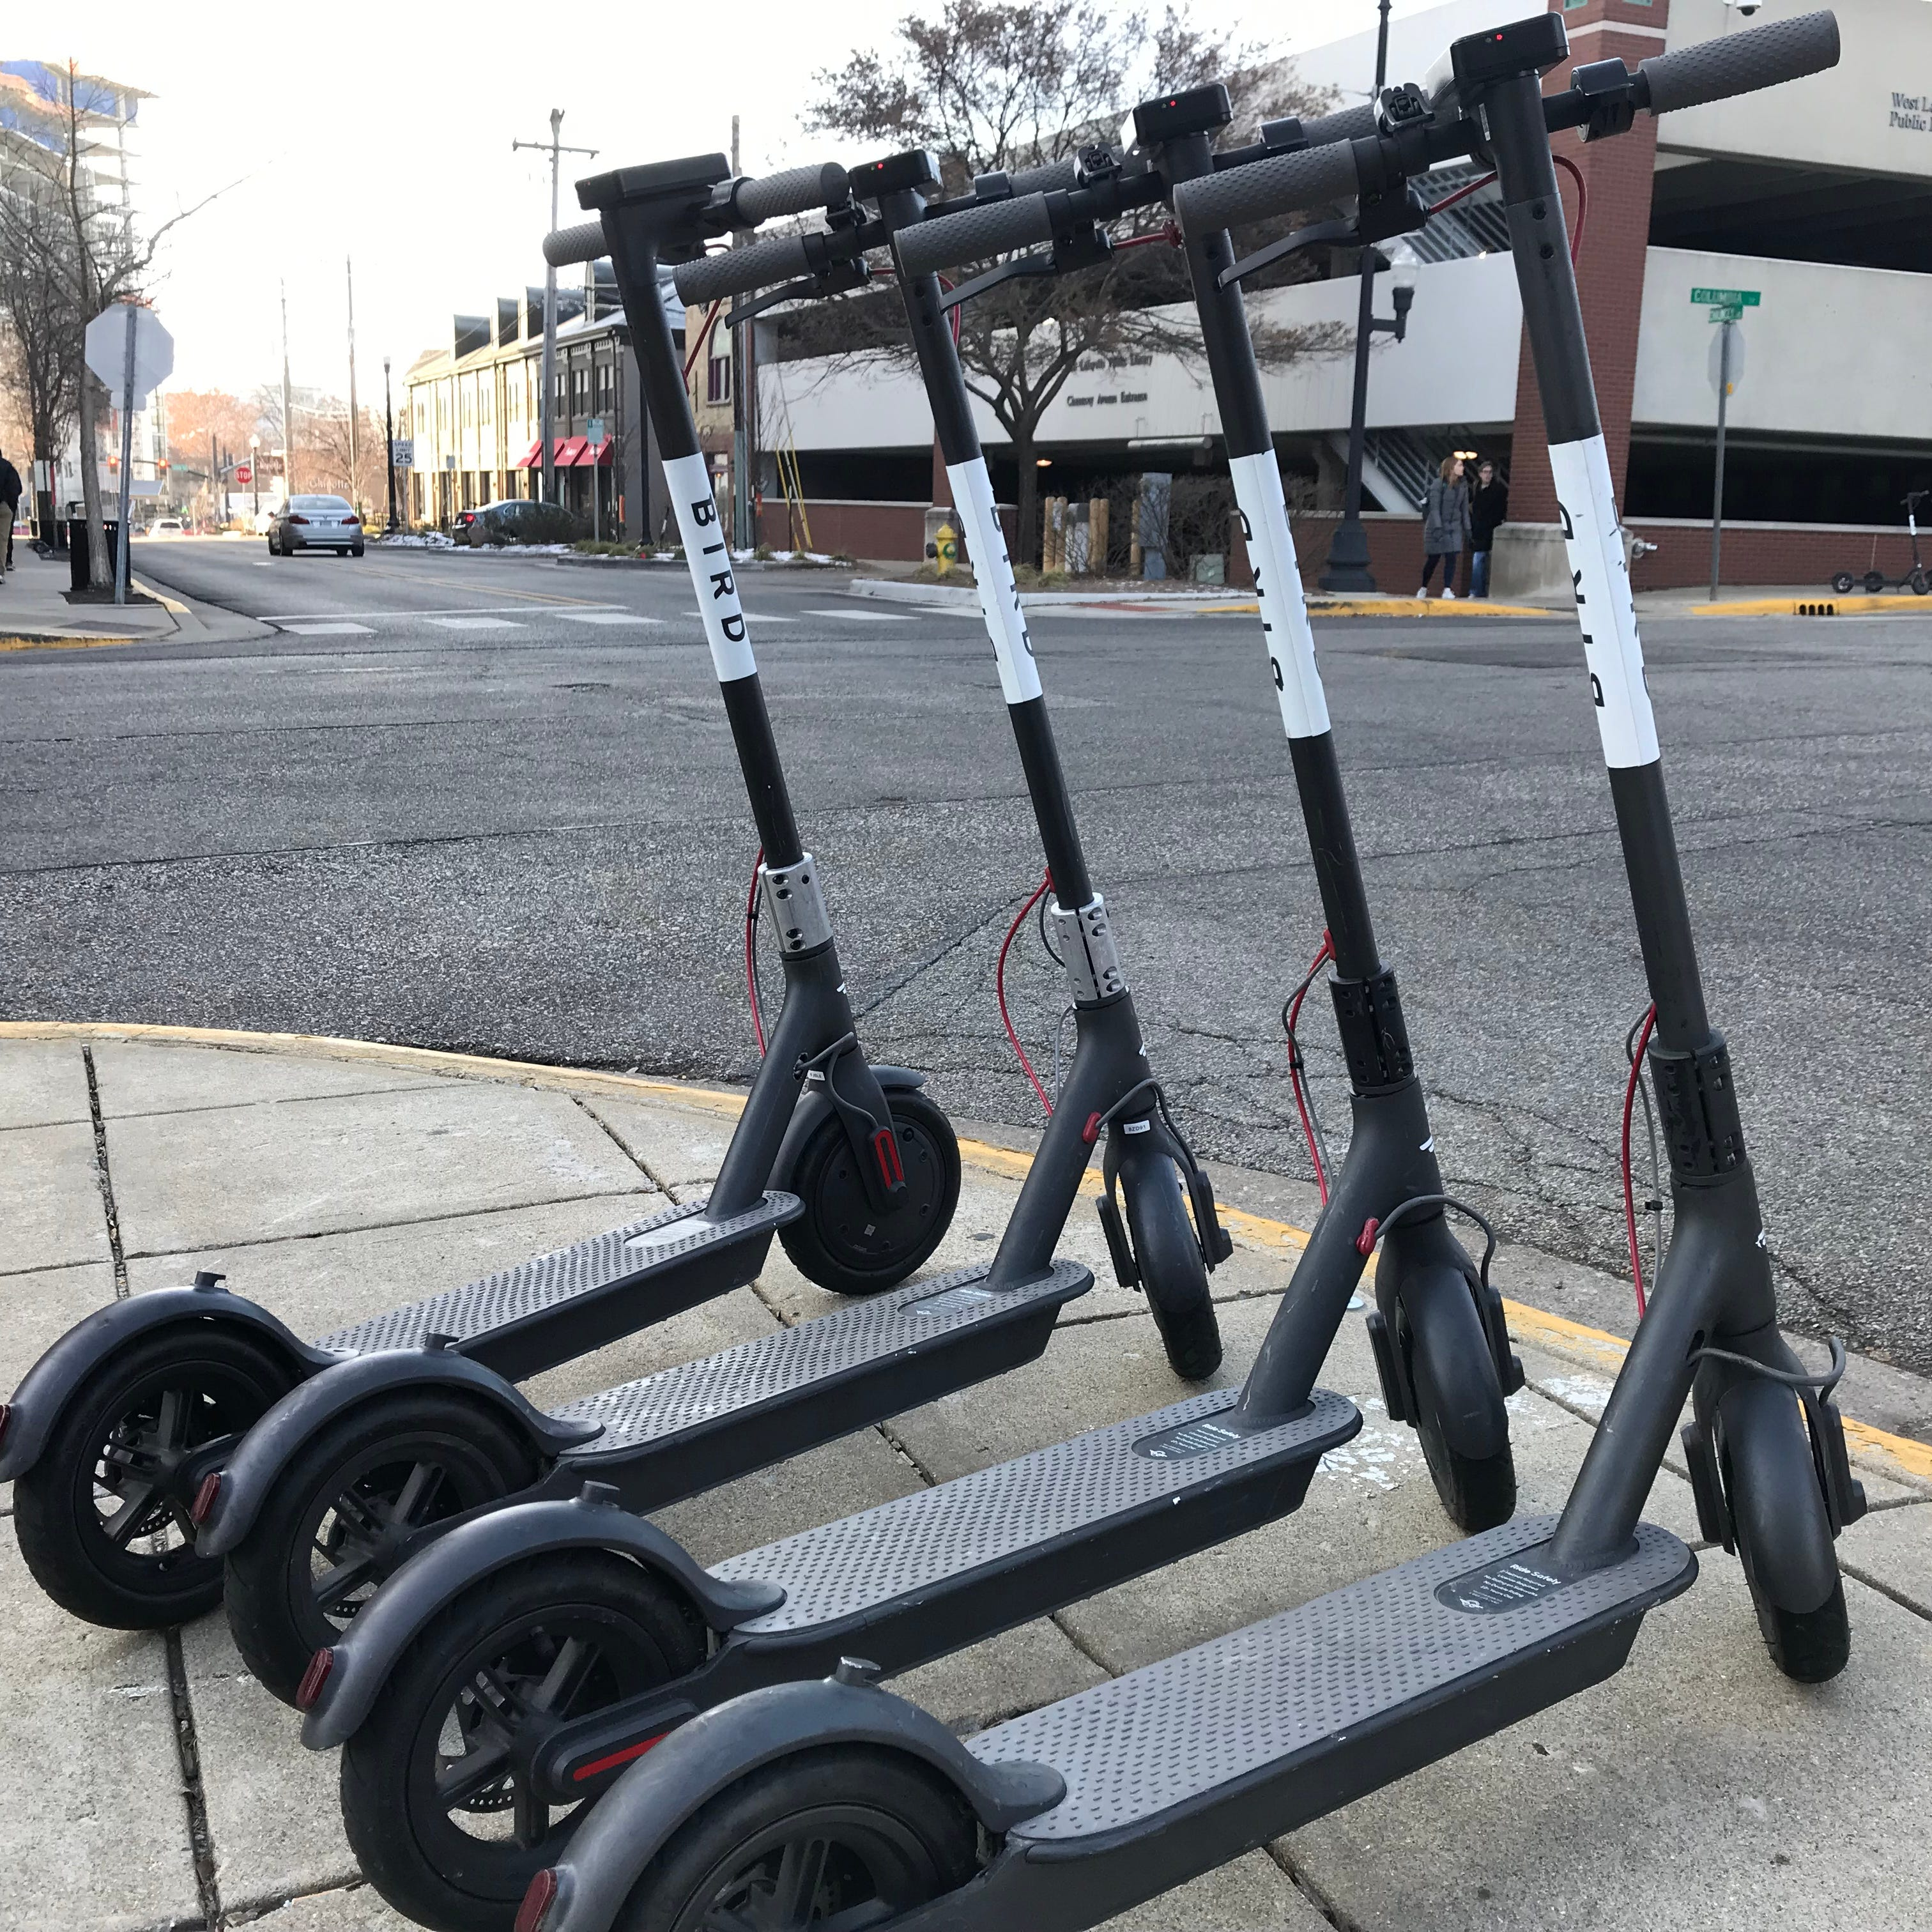 Bangert: More expensive scooter rides at Purdue? Bird drops hints in face of WL fees